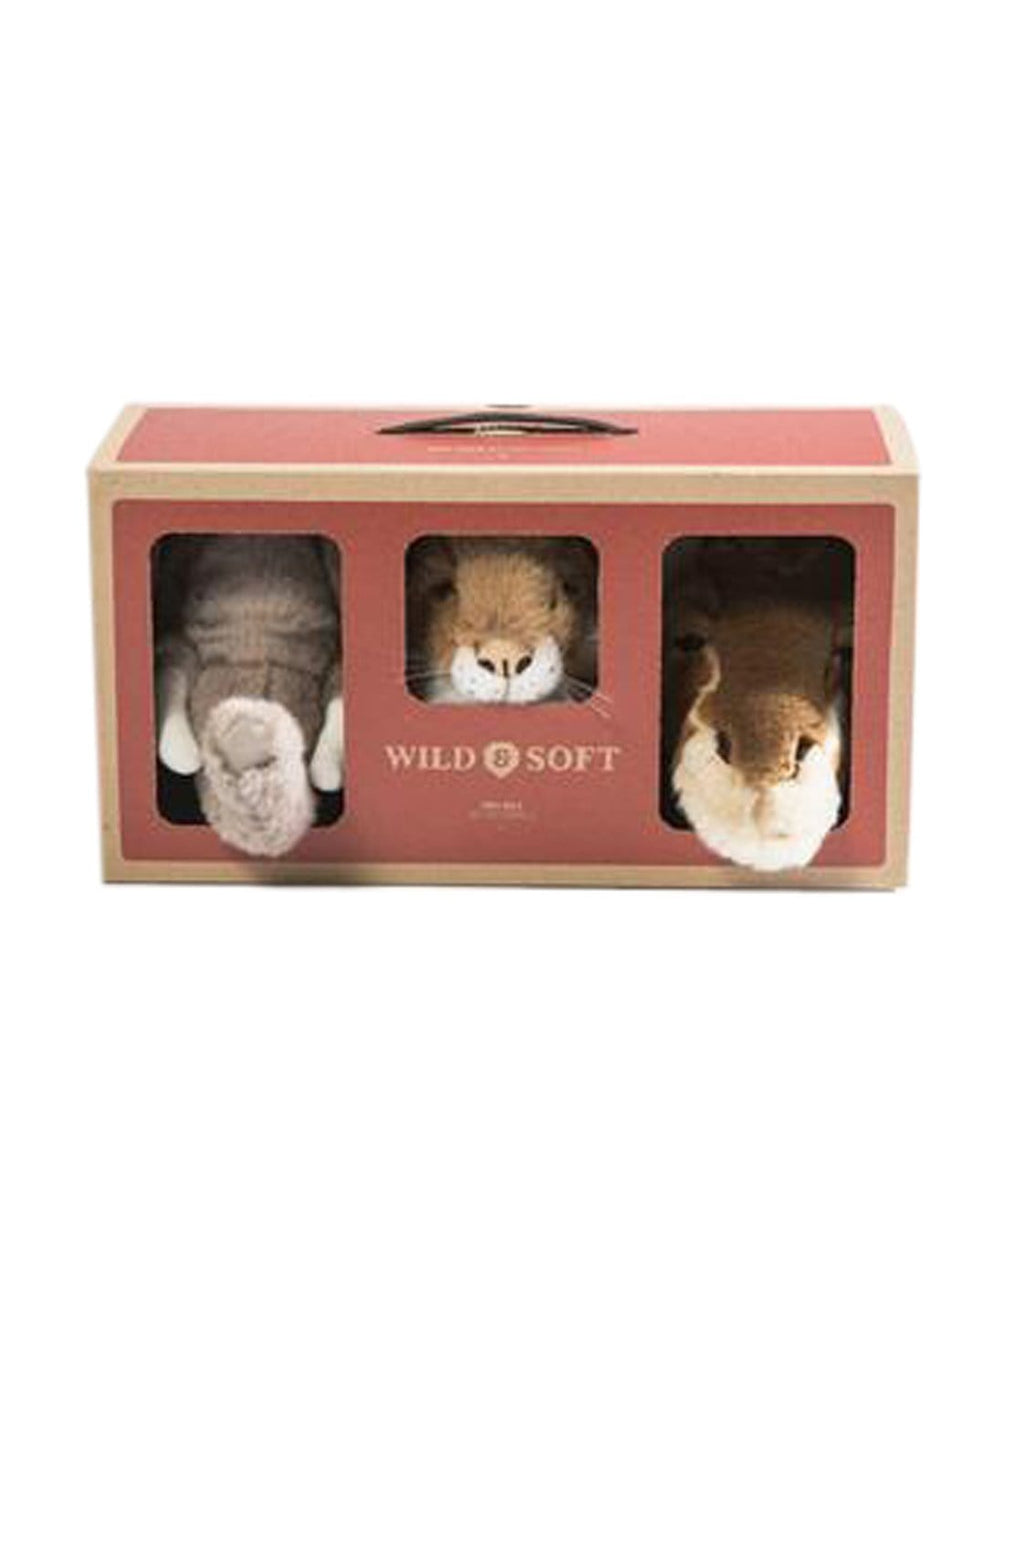 Wild and Soft Safari Box, Mini Elephant, Giraffe & Lion - Hello Little Birdie